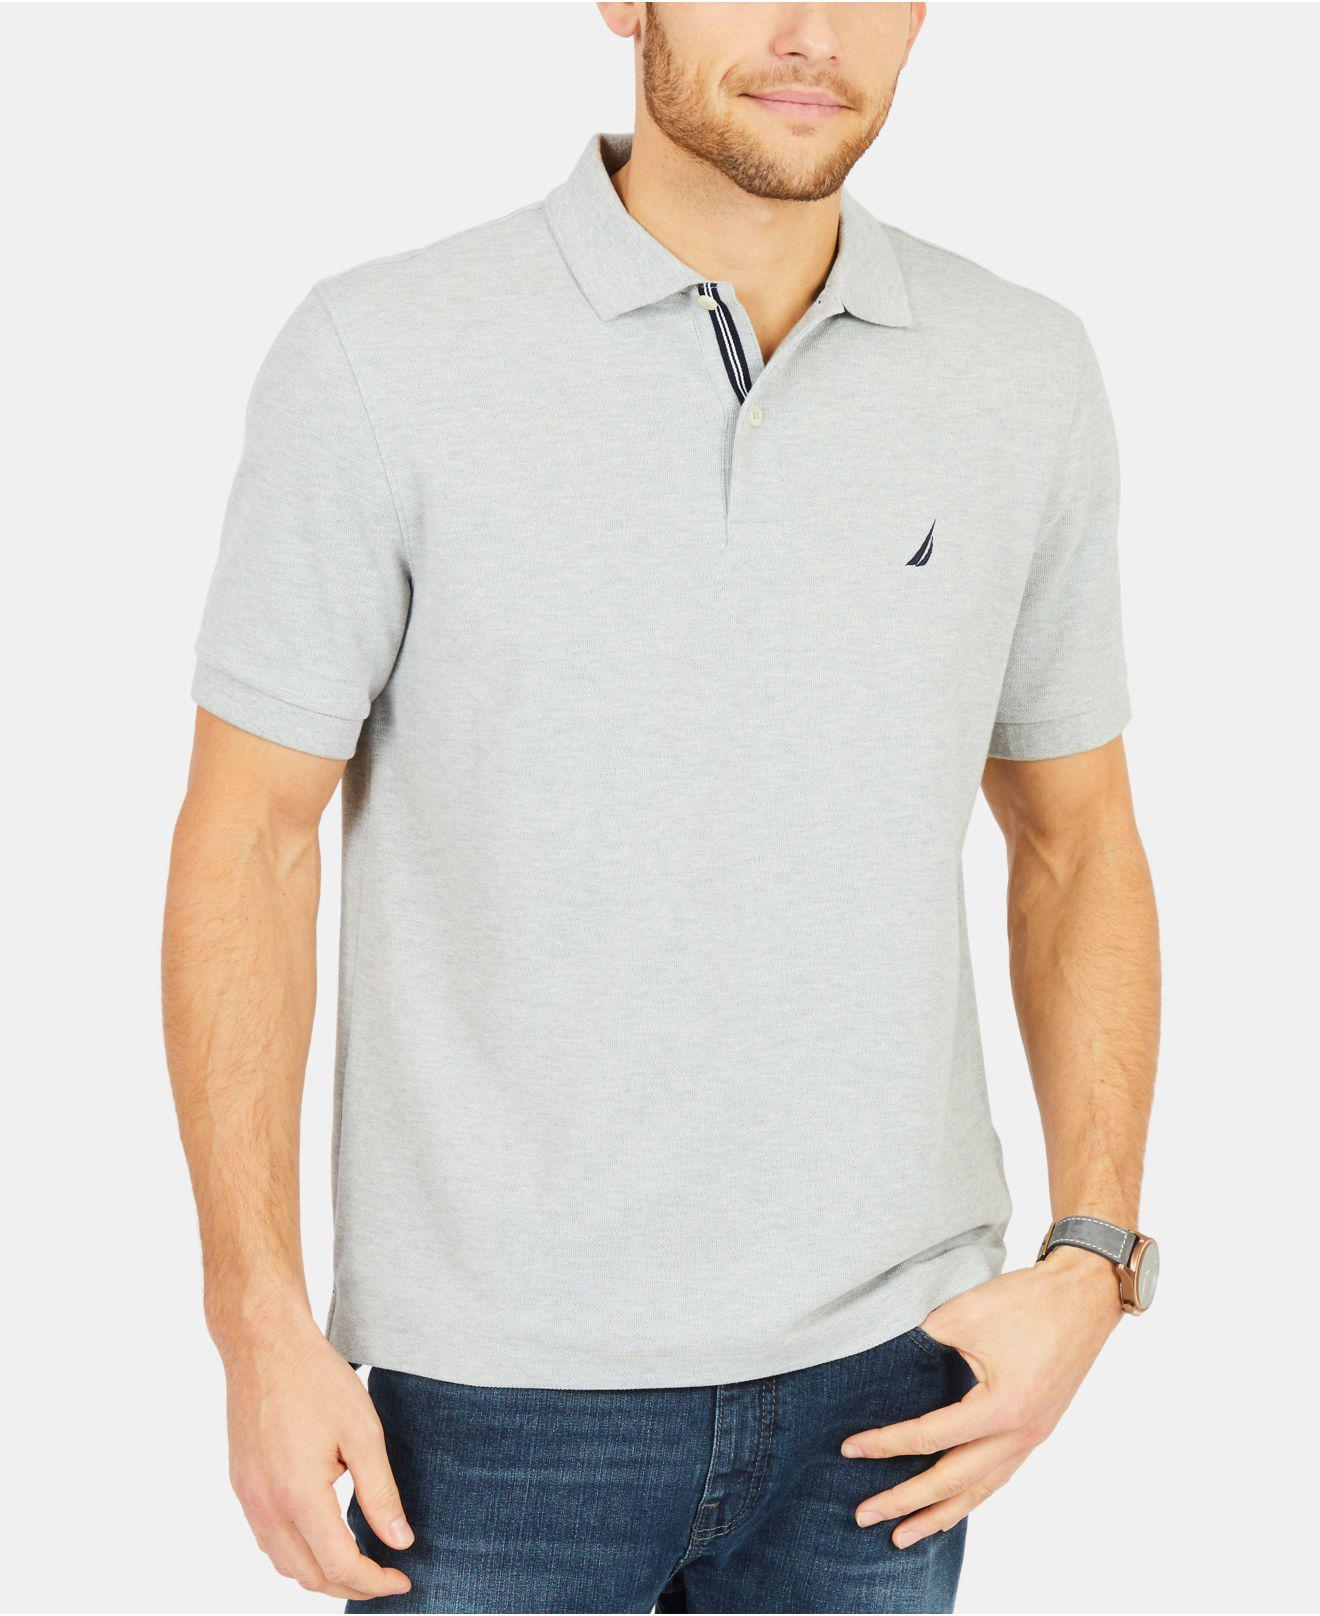 Lyst Nautica Classic Fit Performance Deck Polo Shirt In Gray For